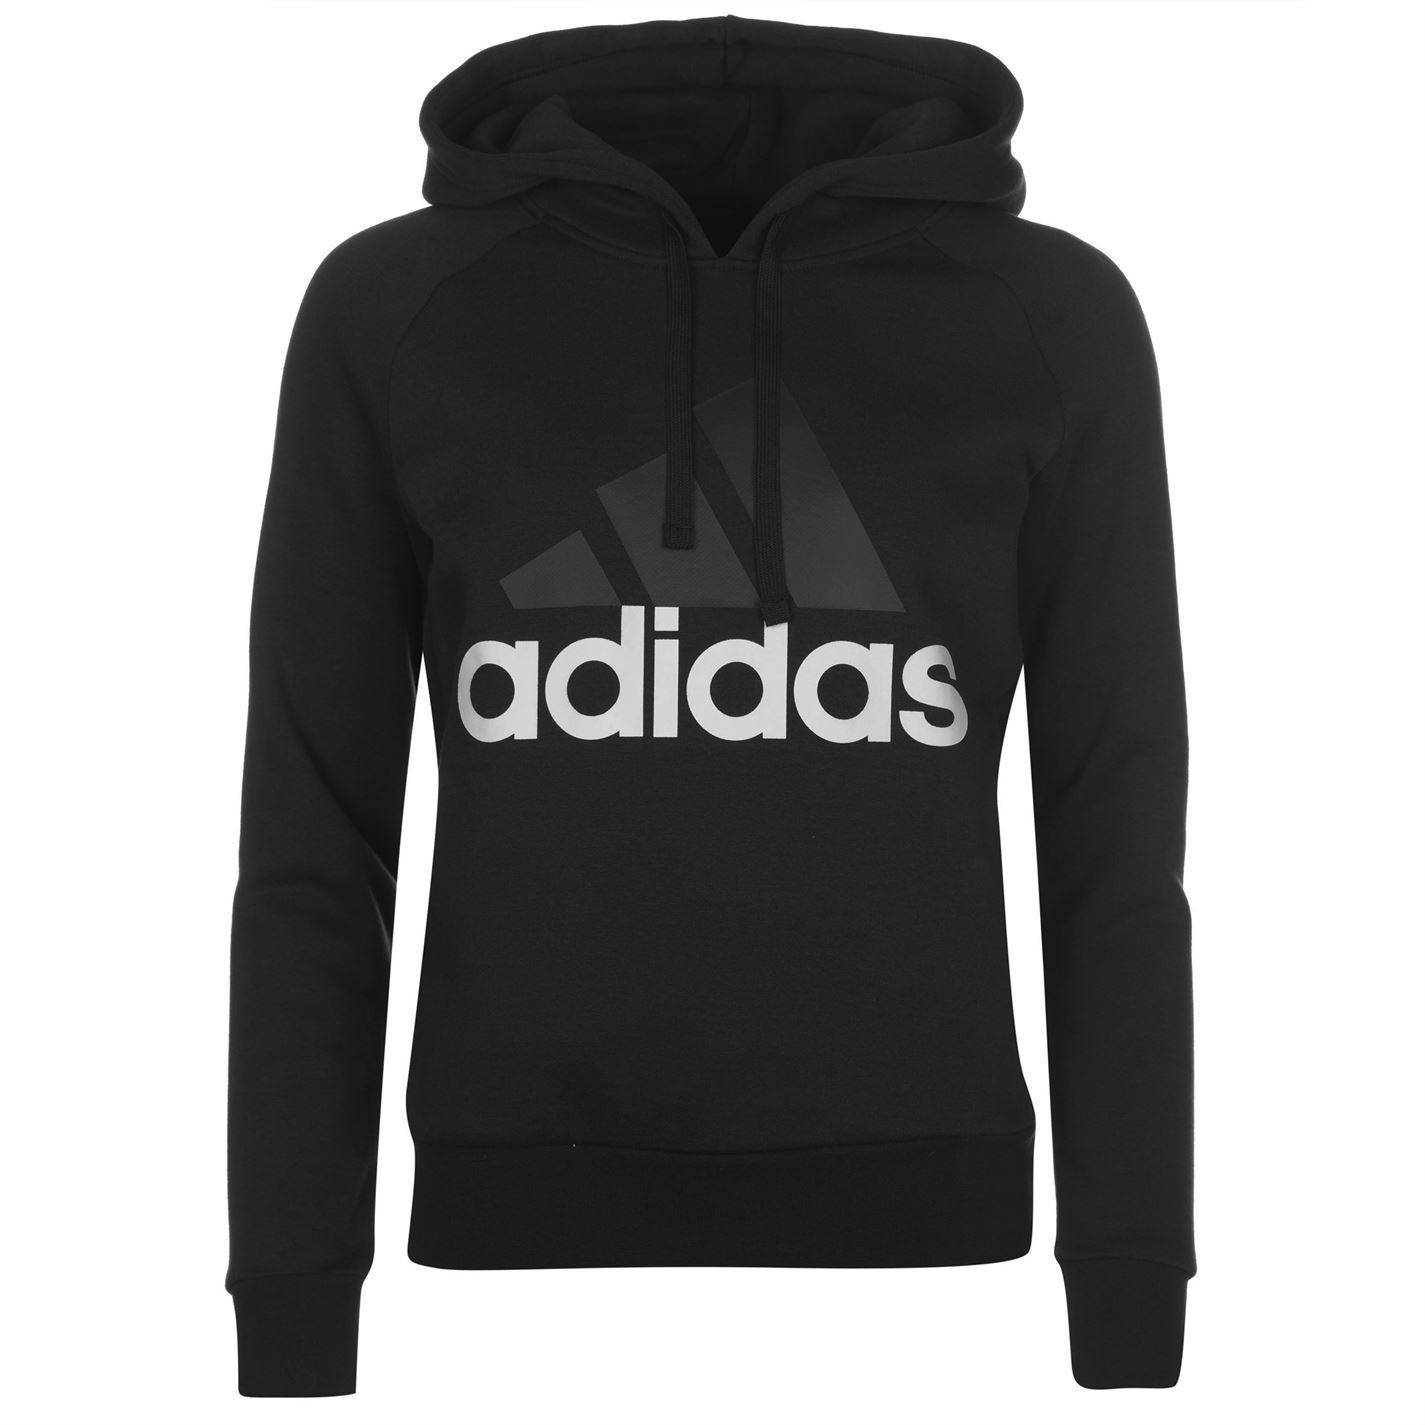 149f74105f74 adidas Linear Over the Head Hoody Ladies Enjoy an iconic wear in comfort in  the adidas Linear Over the Head Hoody - an over the head design with a ...